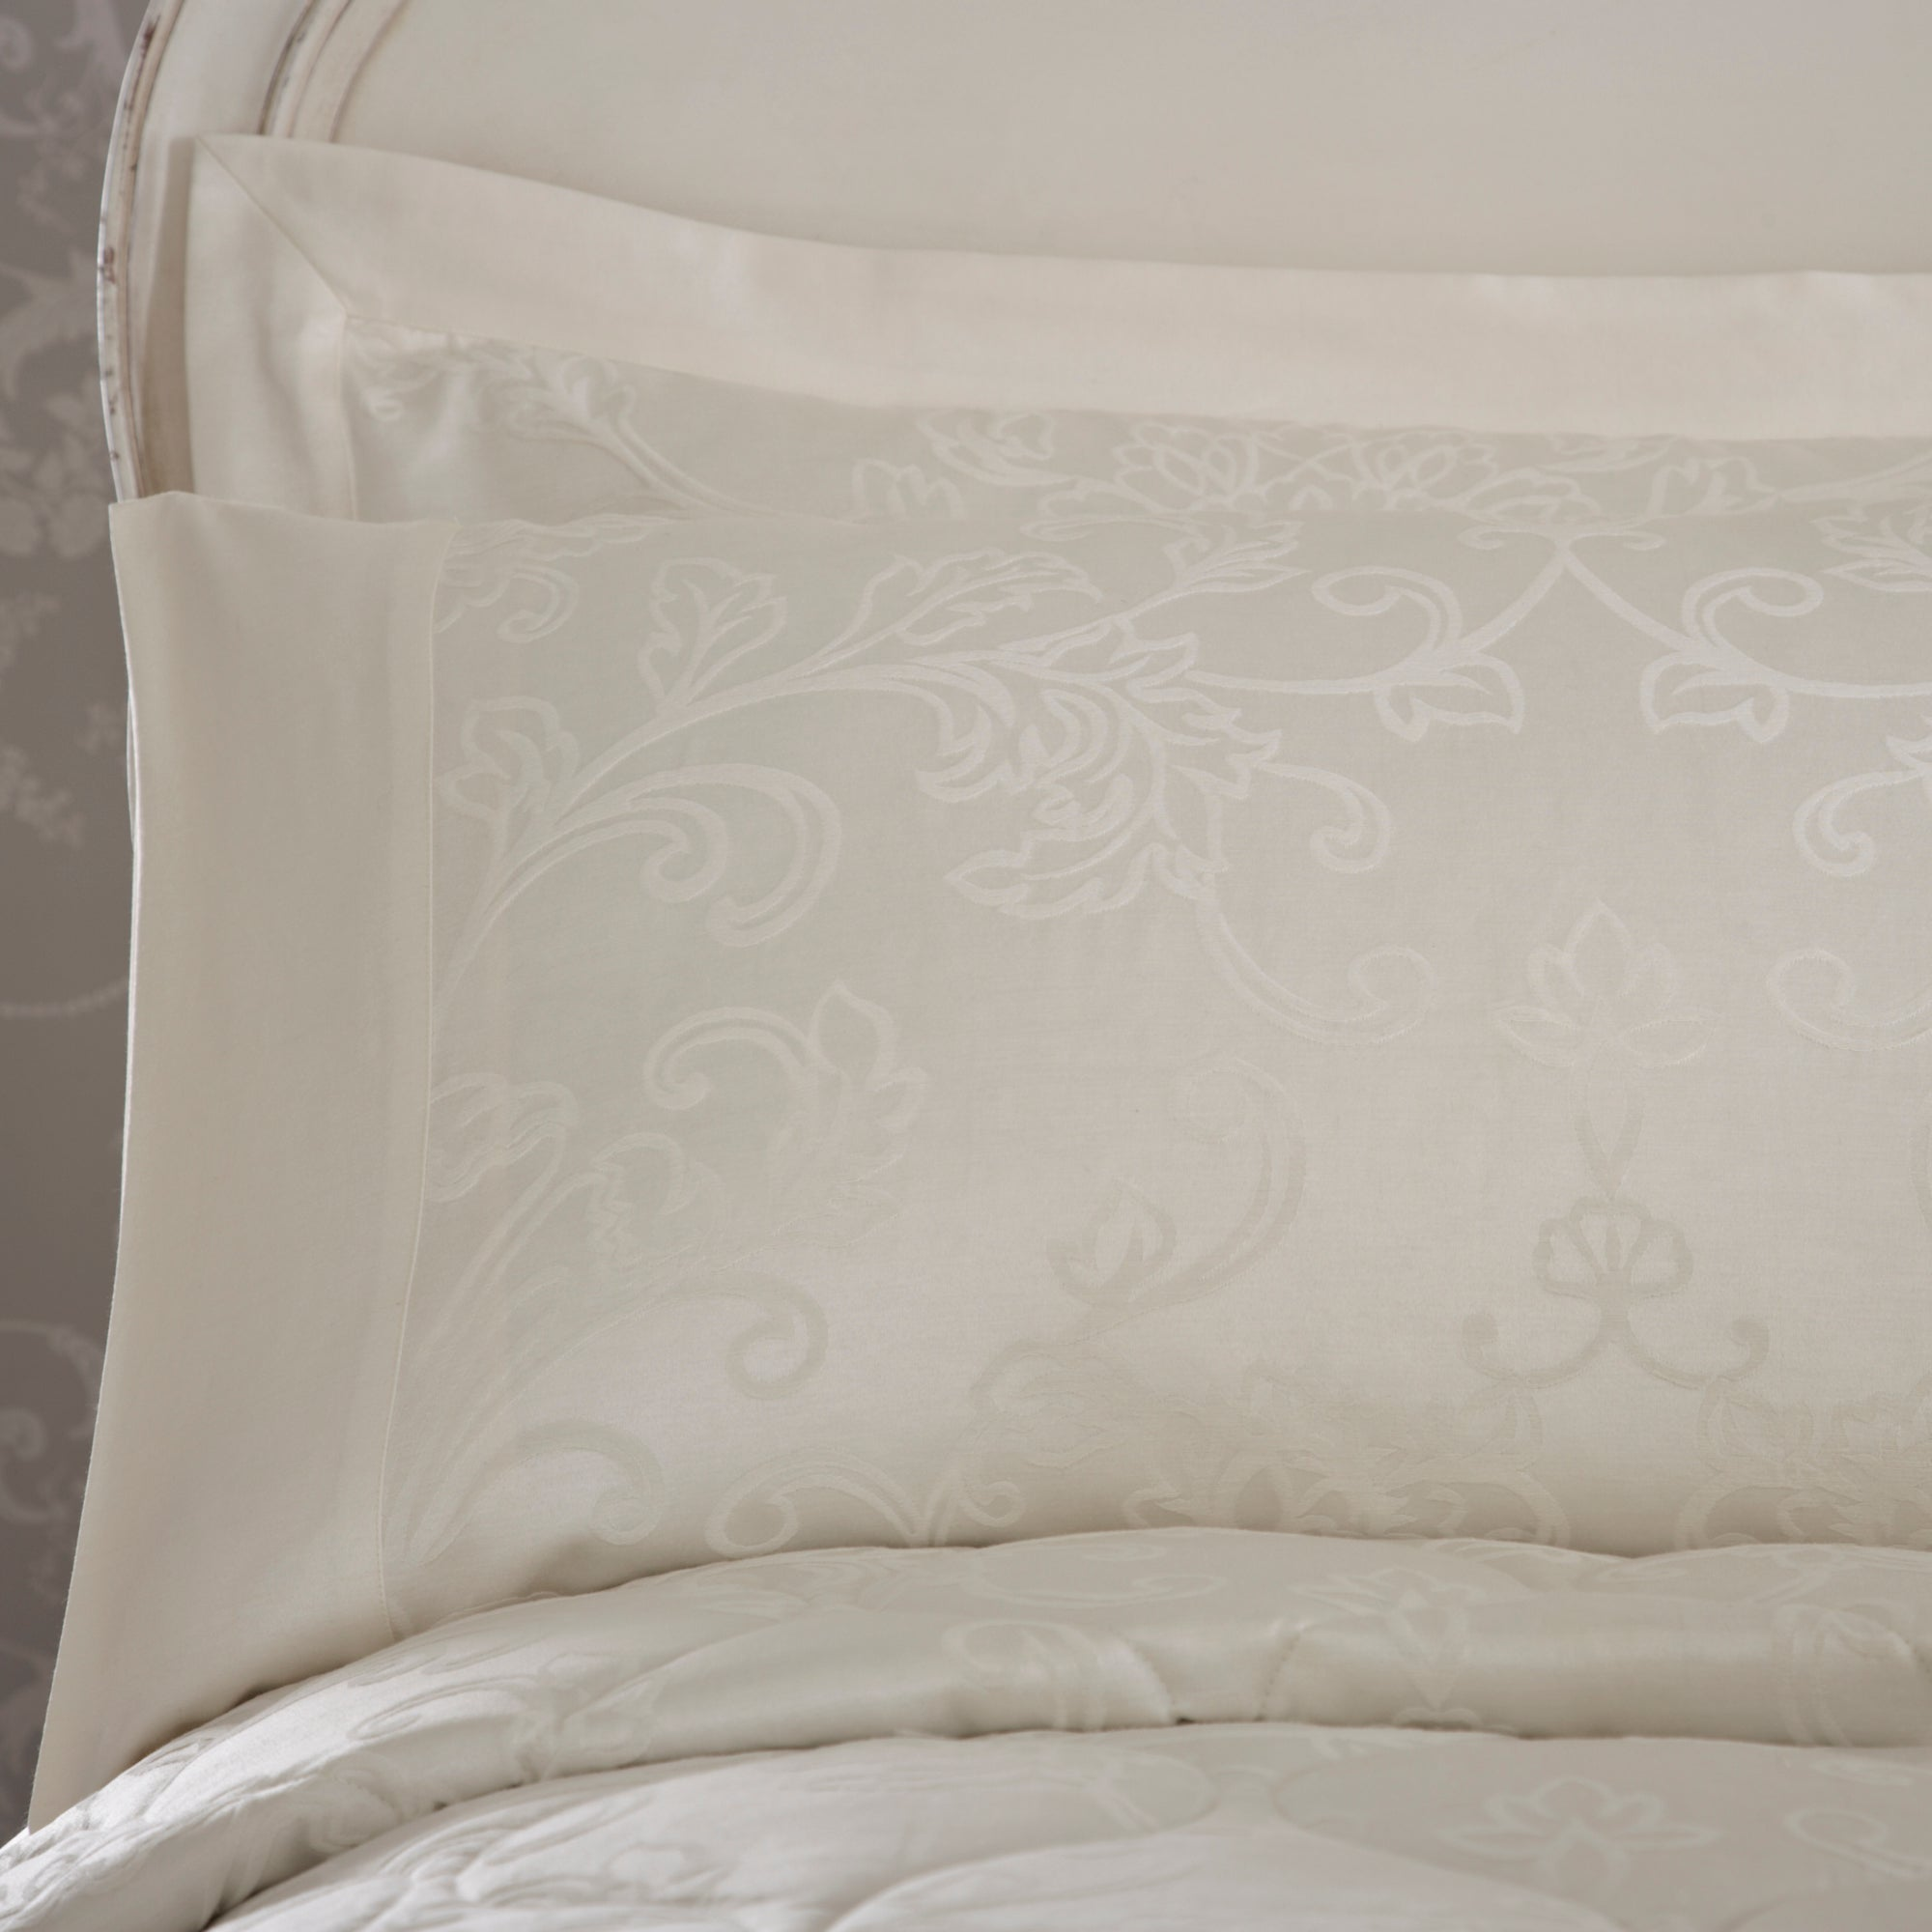 Dorma Cream Pascale Collection Cuffed Pillowcase